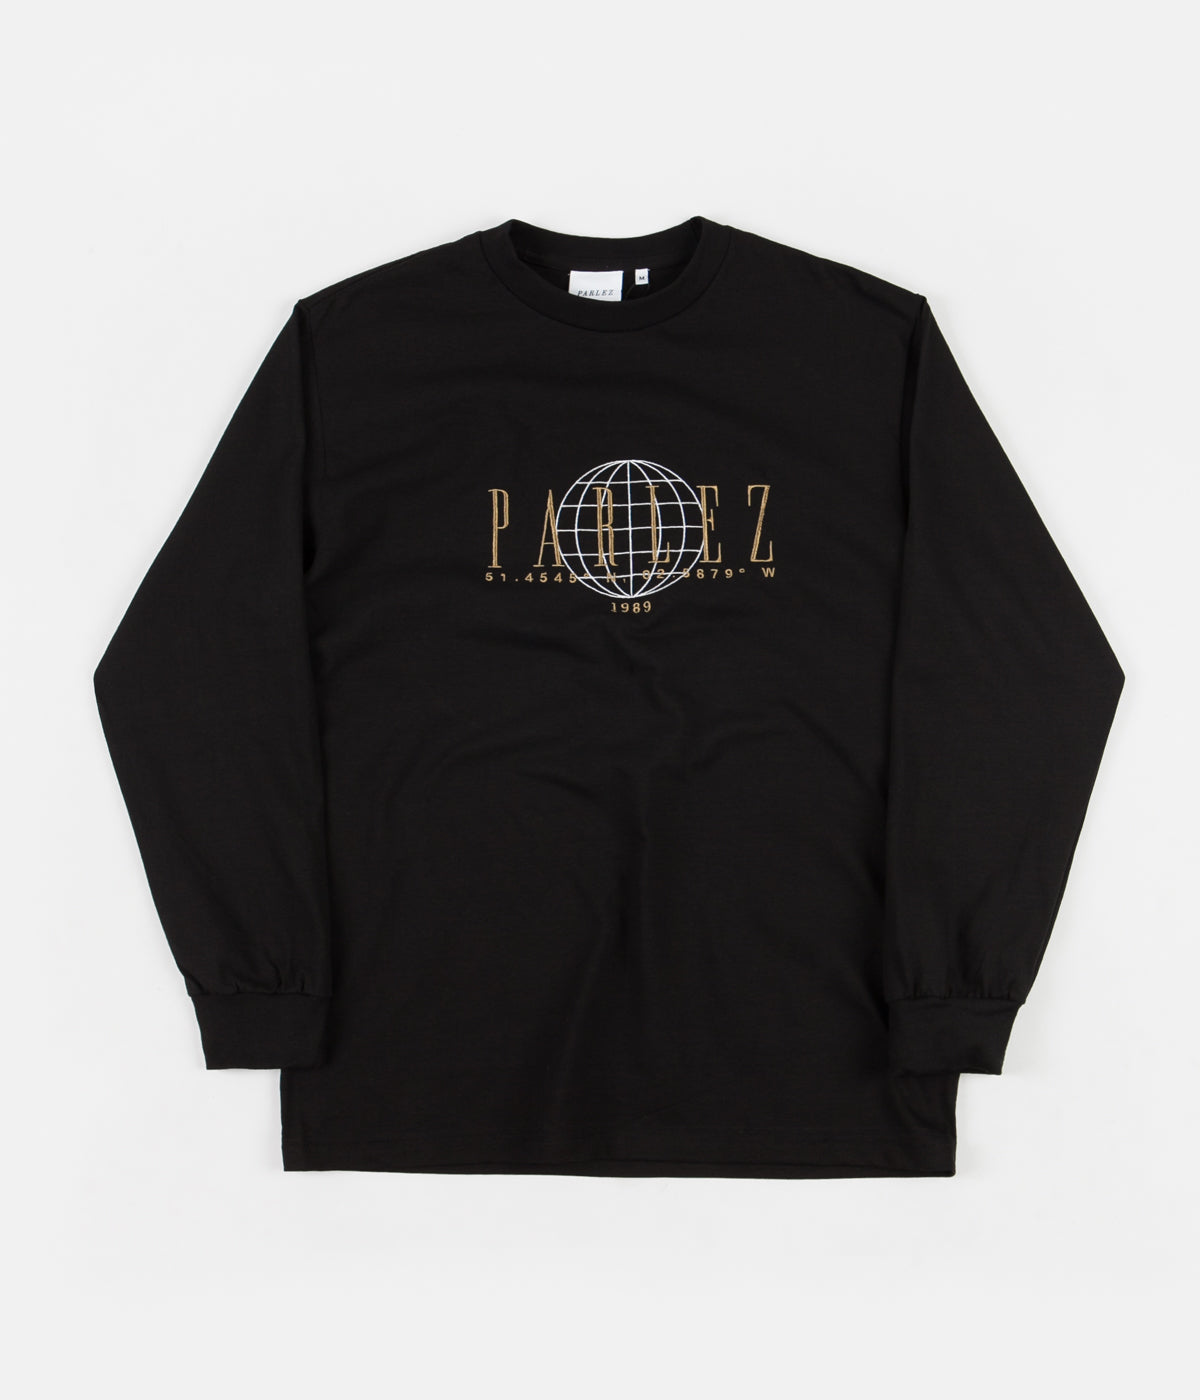 Parlez Global Long Sleeve T-Shirt - Black